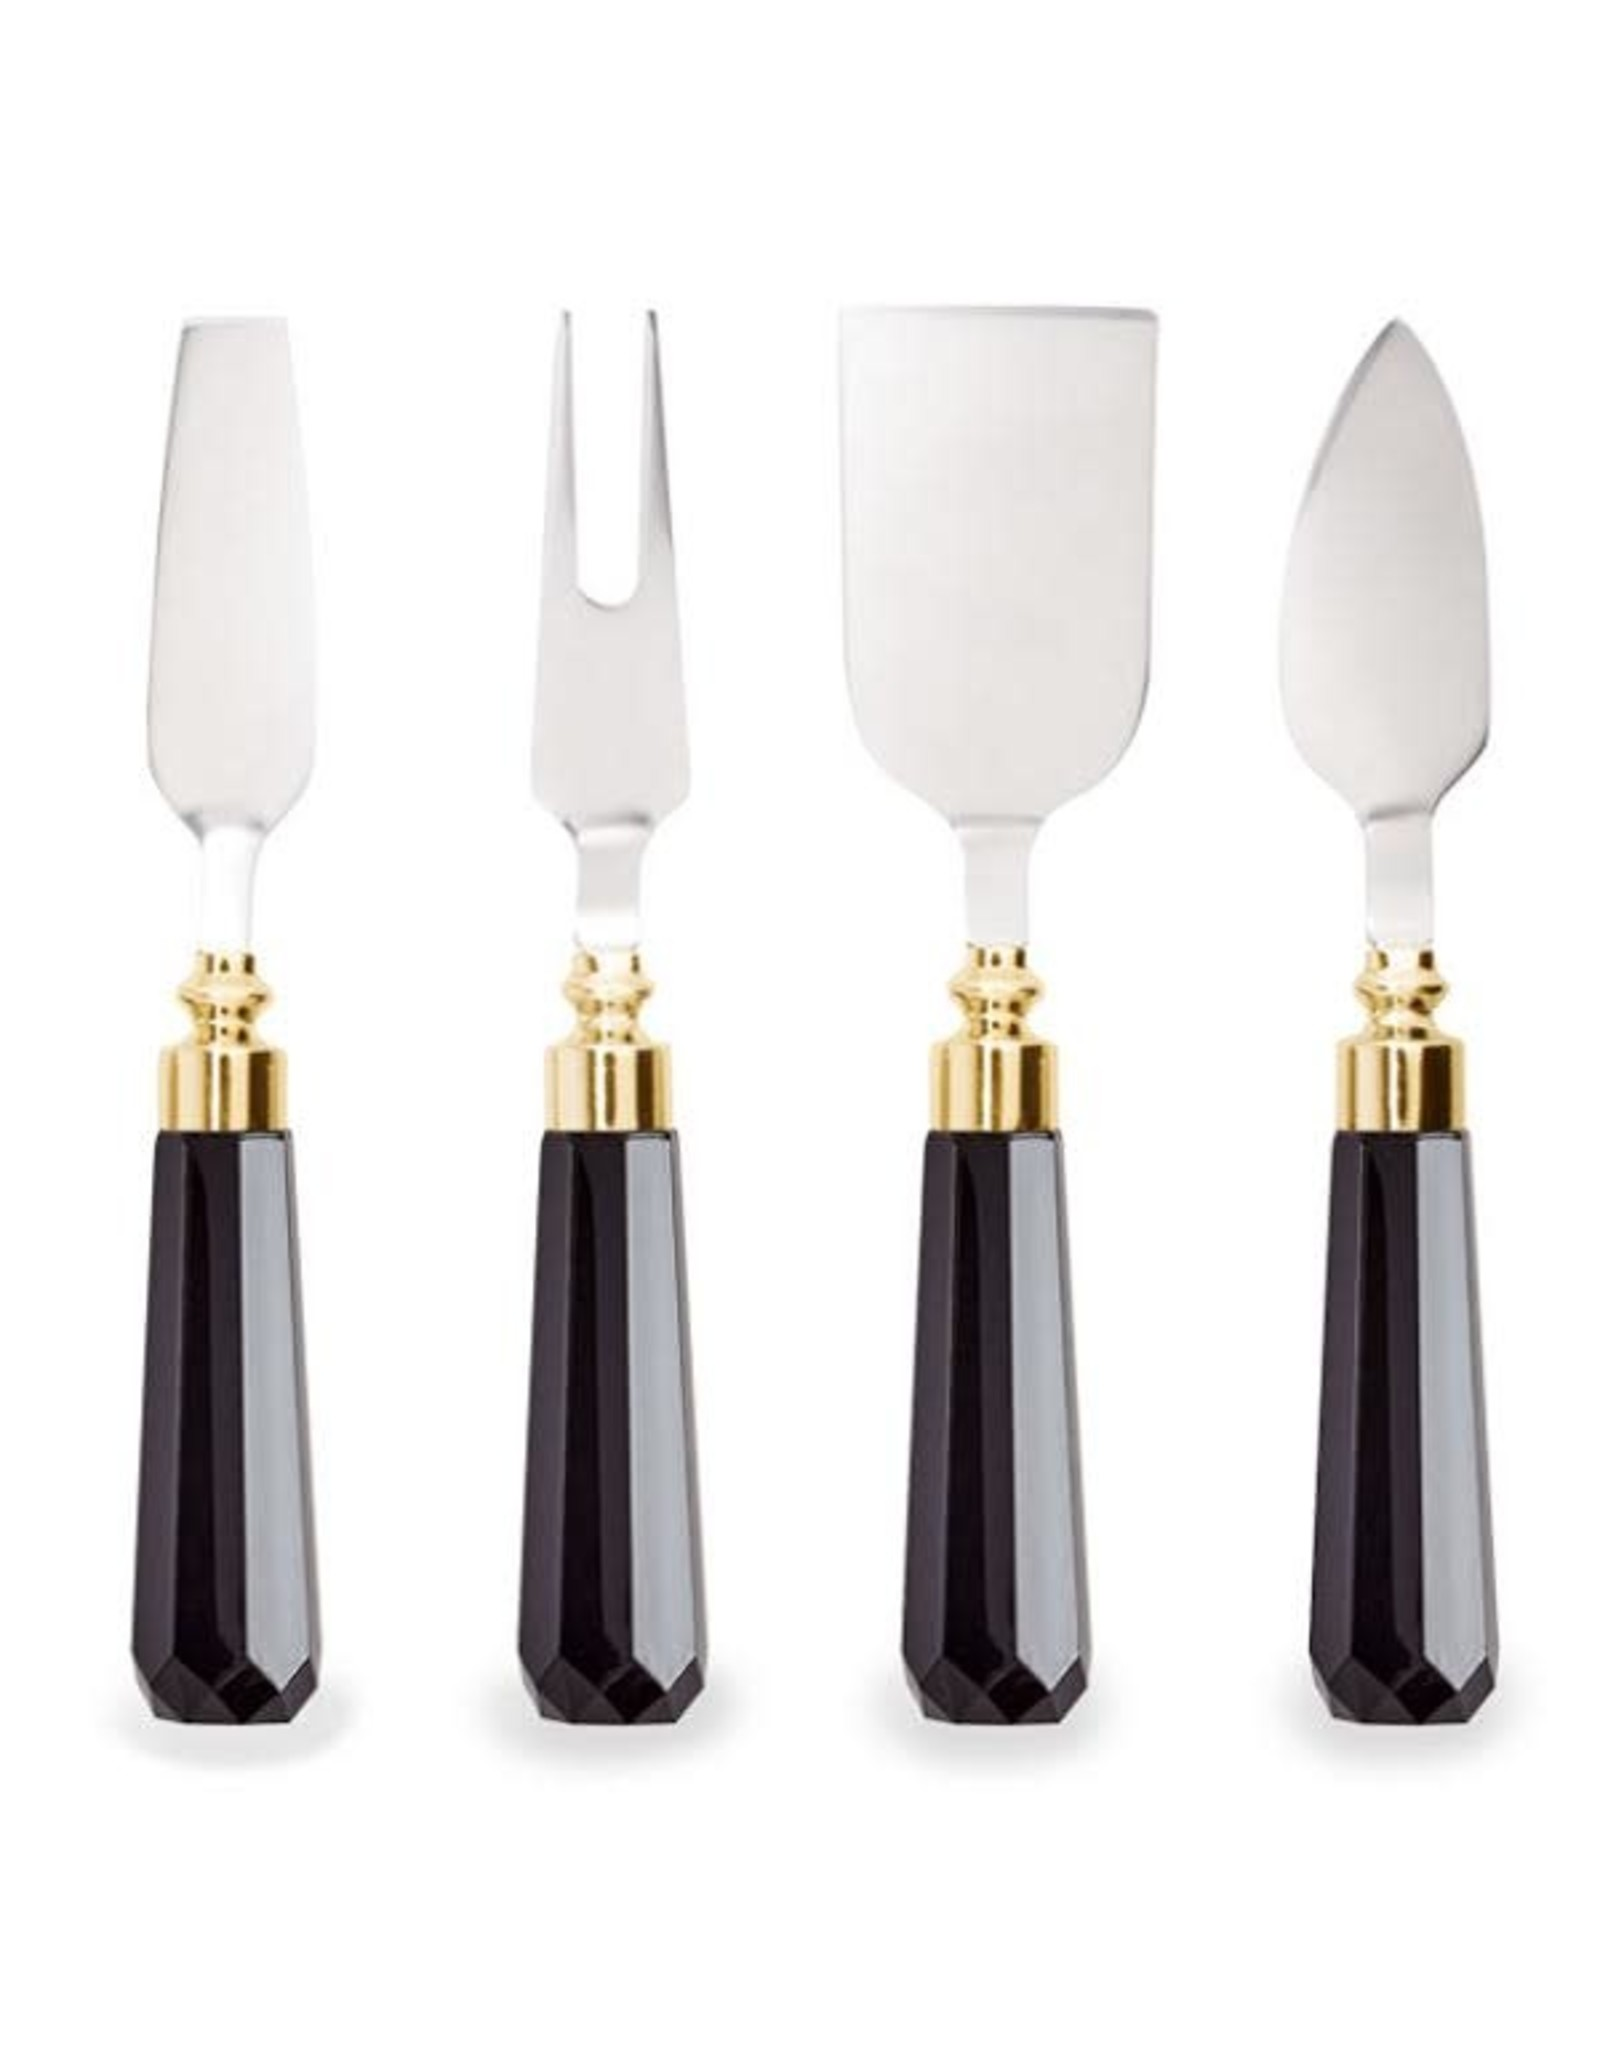 Wild Eye Cheese Knives Art Deco